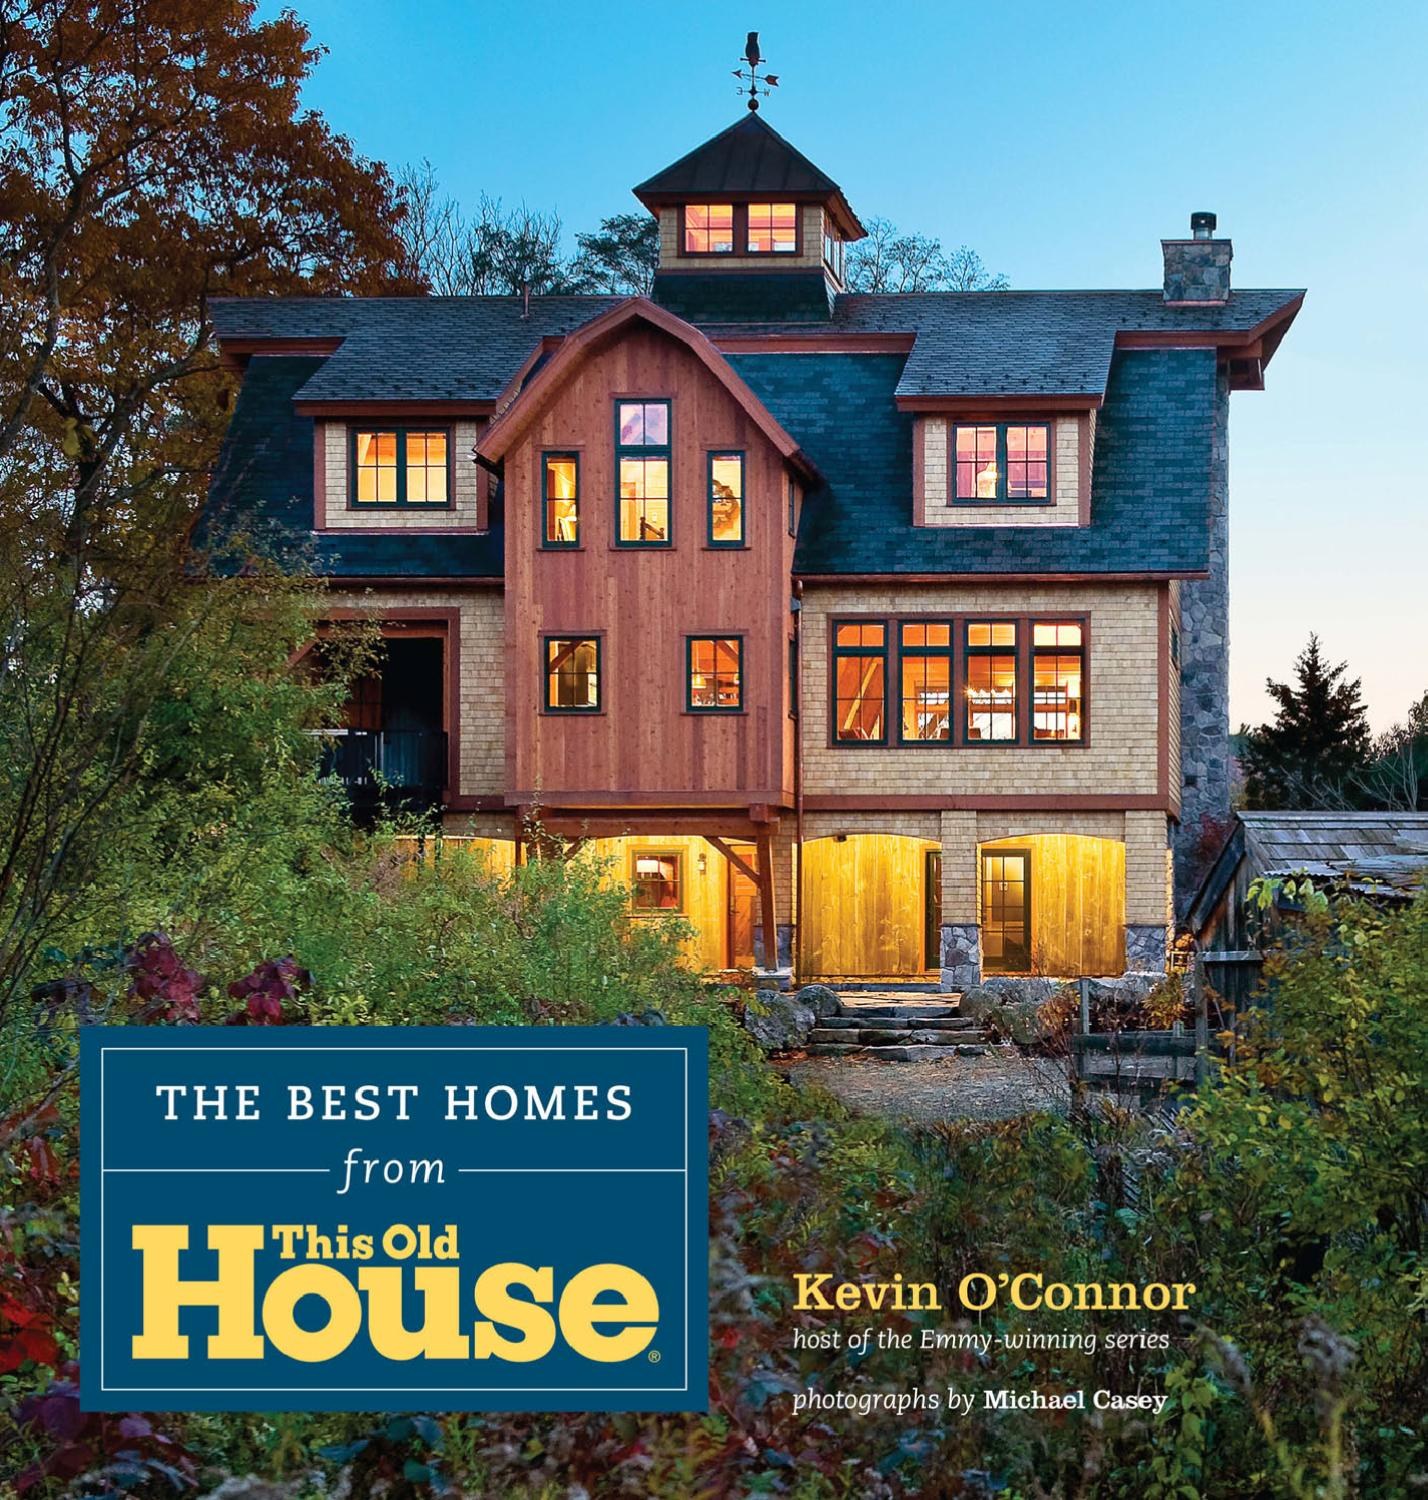 The best homes from this old house by abrams issuu for This old housse